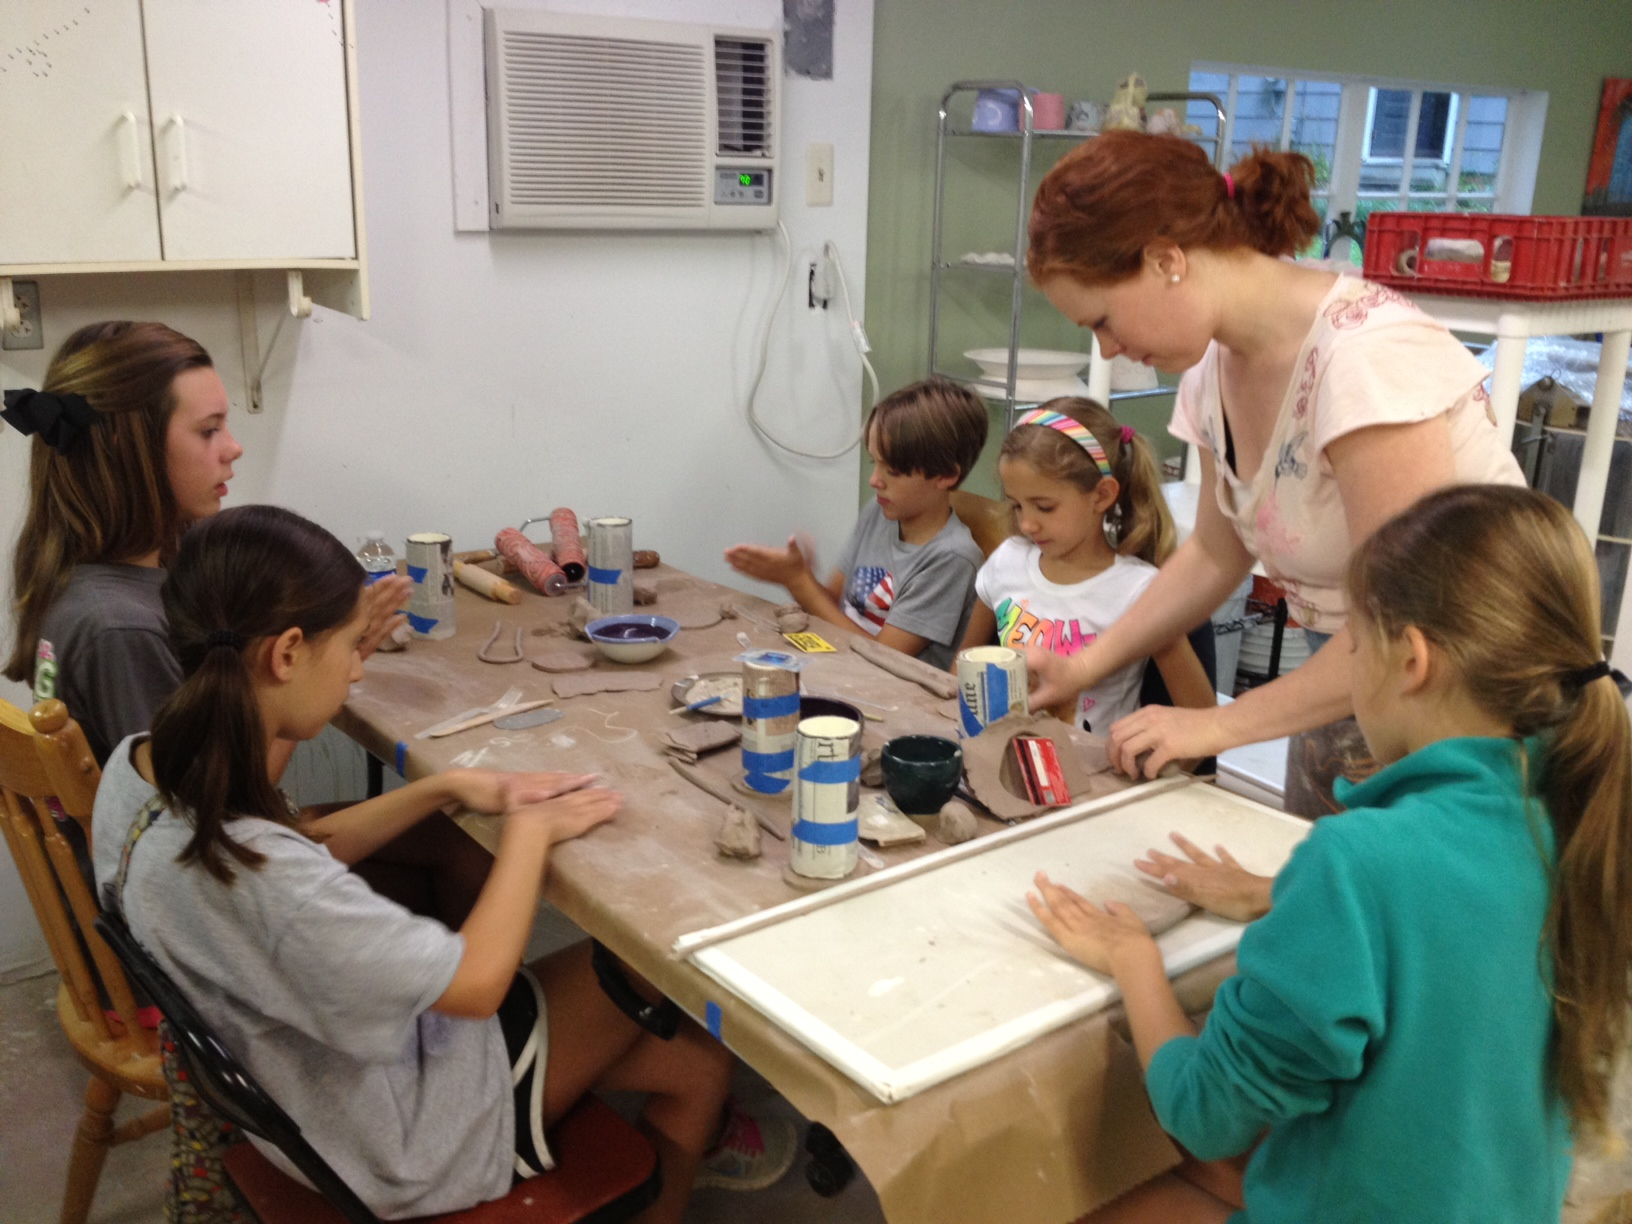 Kids Pottery Camp - The highlight of the year for young artists.